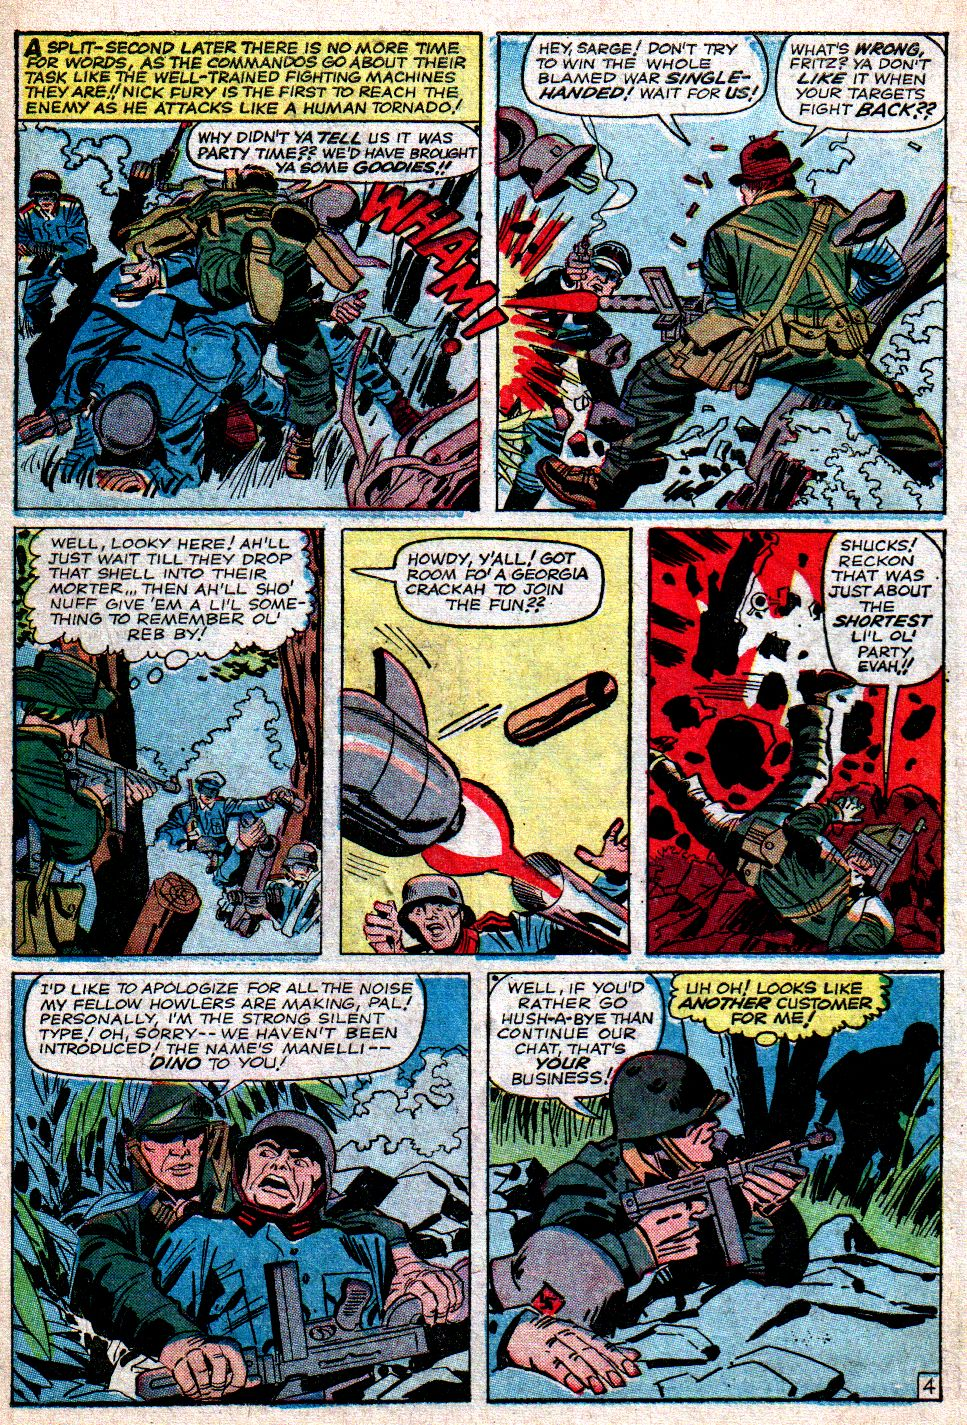 Read online Sgt. Fury comic -  Issue #7 - 6